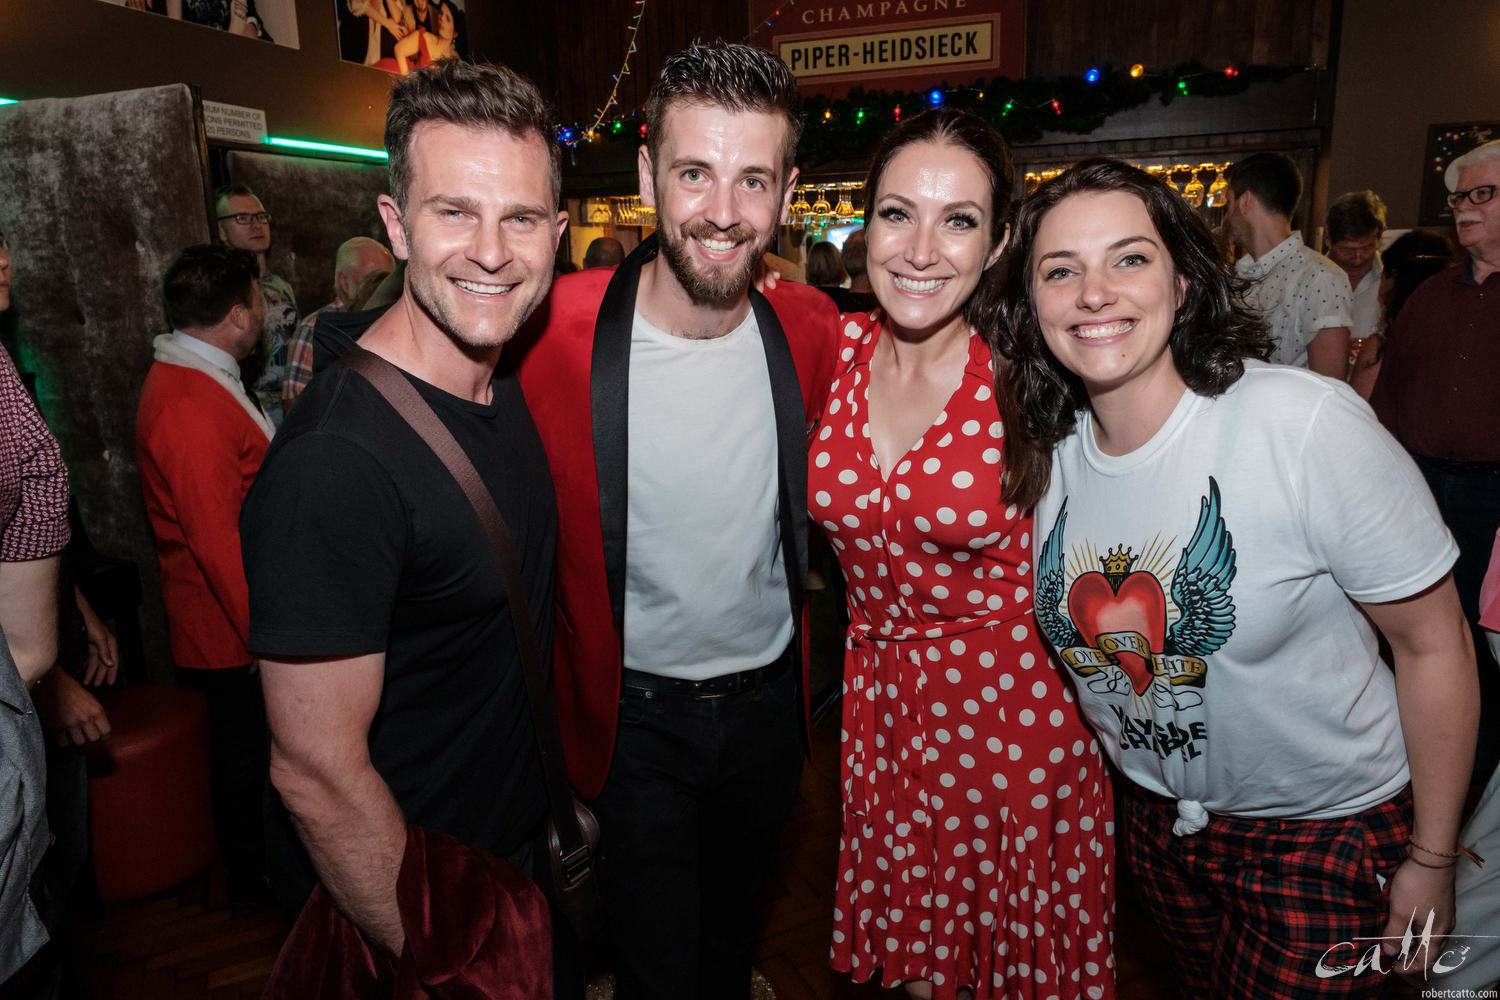 David Campbell, Toby Francis, Lisa Campbell and producer Lauren Peters celebrate another successful event.